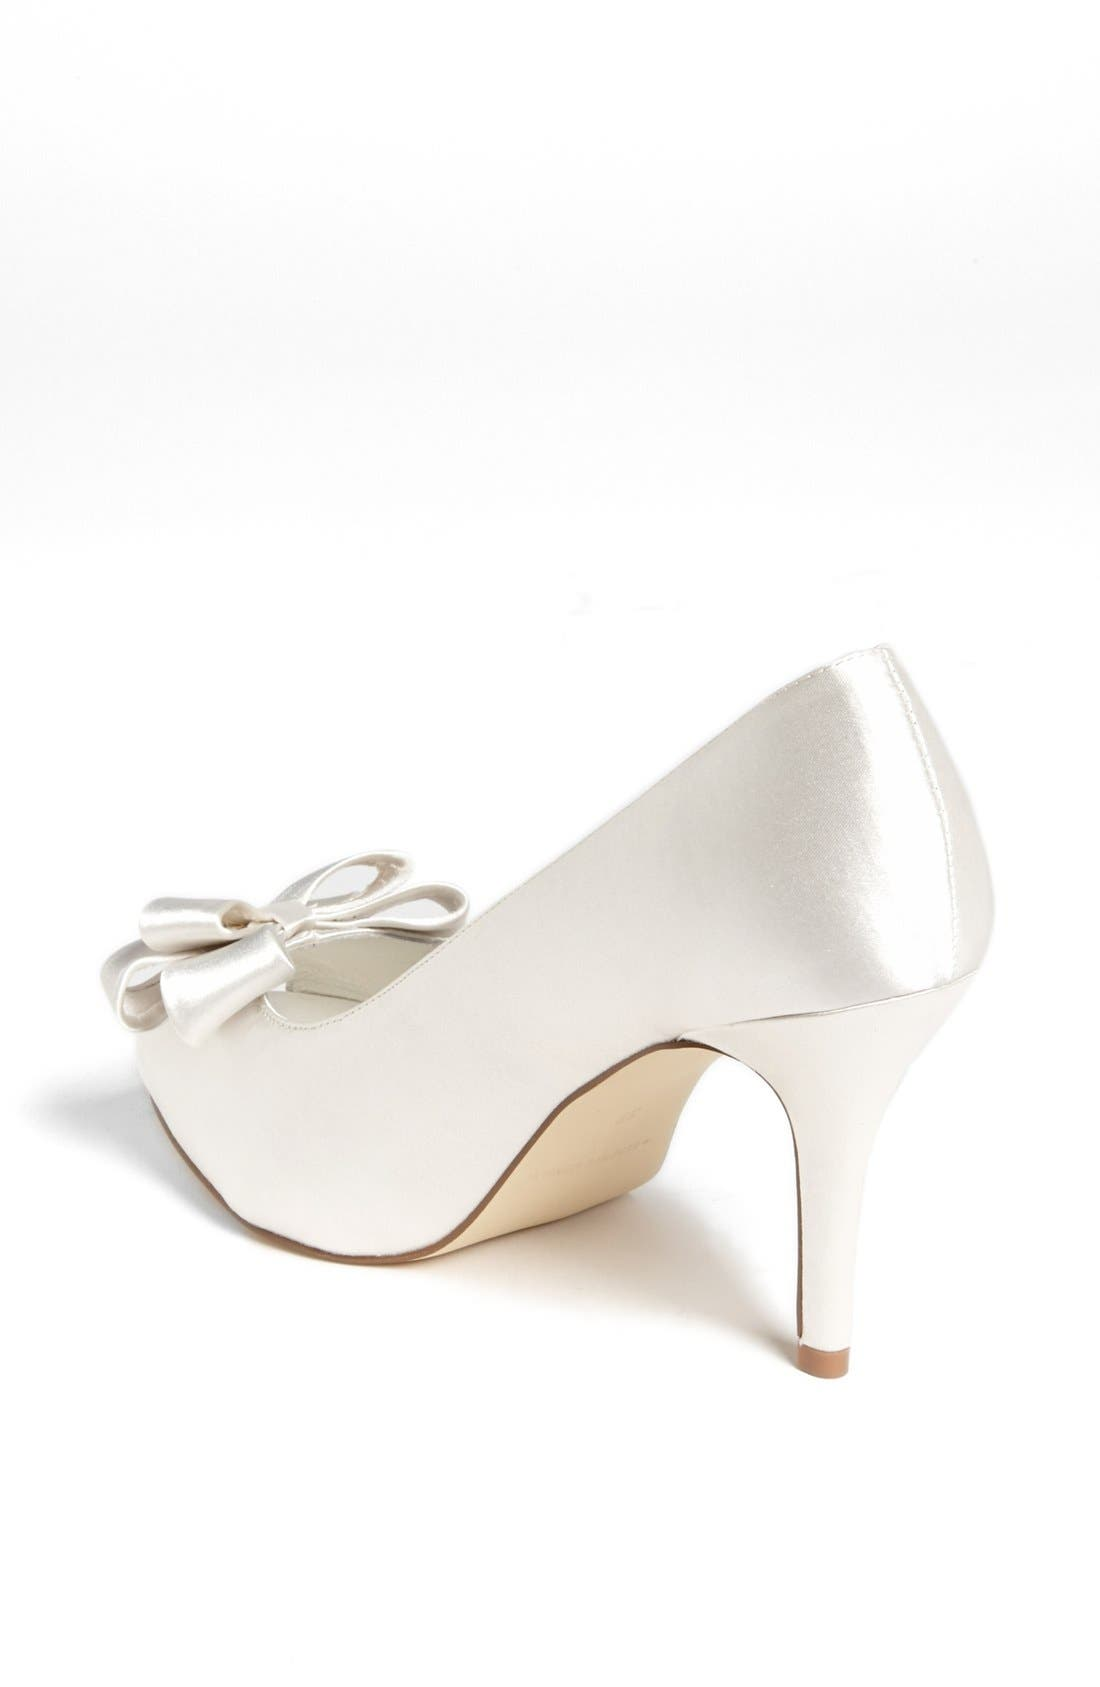 Bow Peep Toe Pump,                             Alternate thumbnail 2, color,                             Ivory